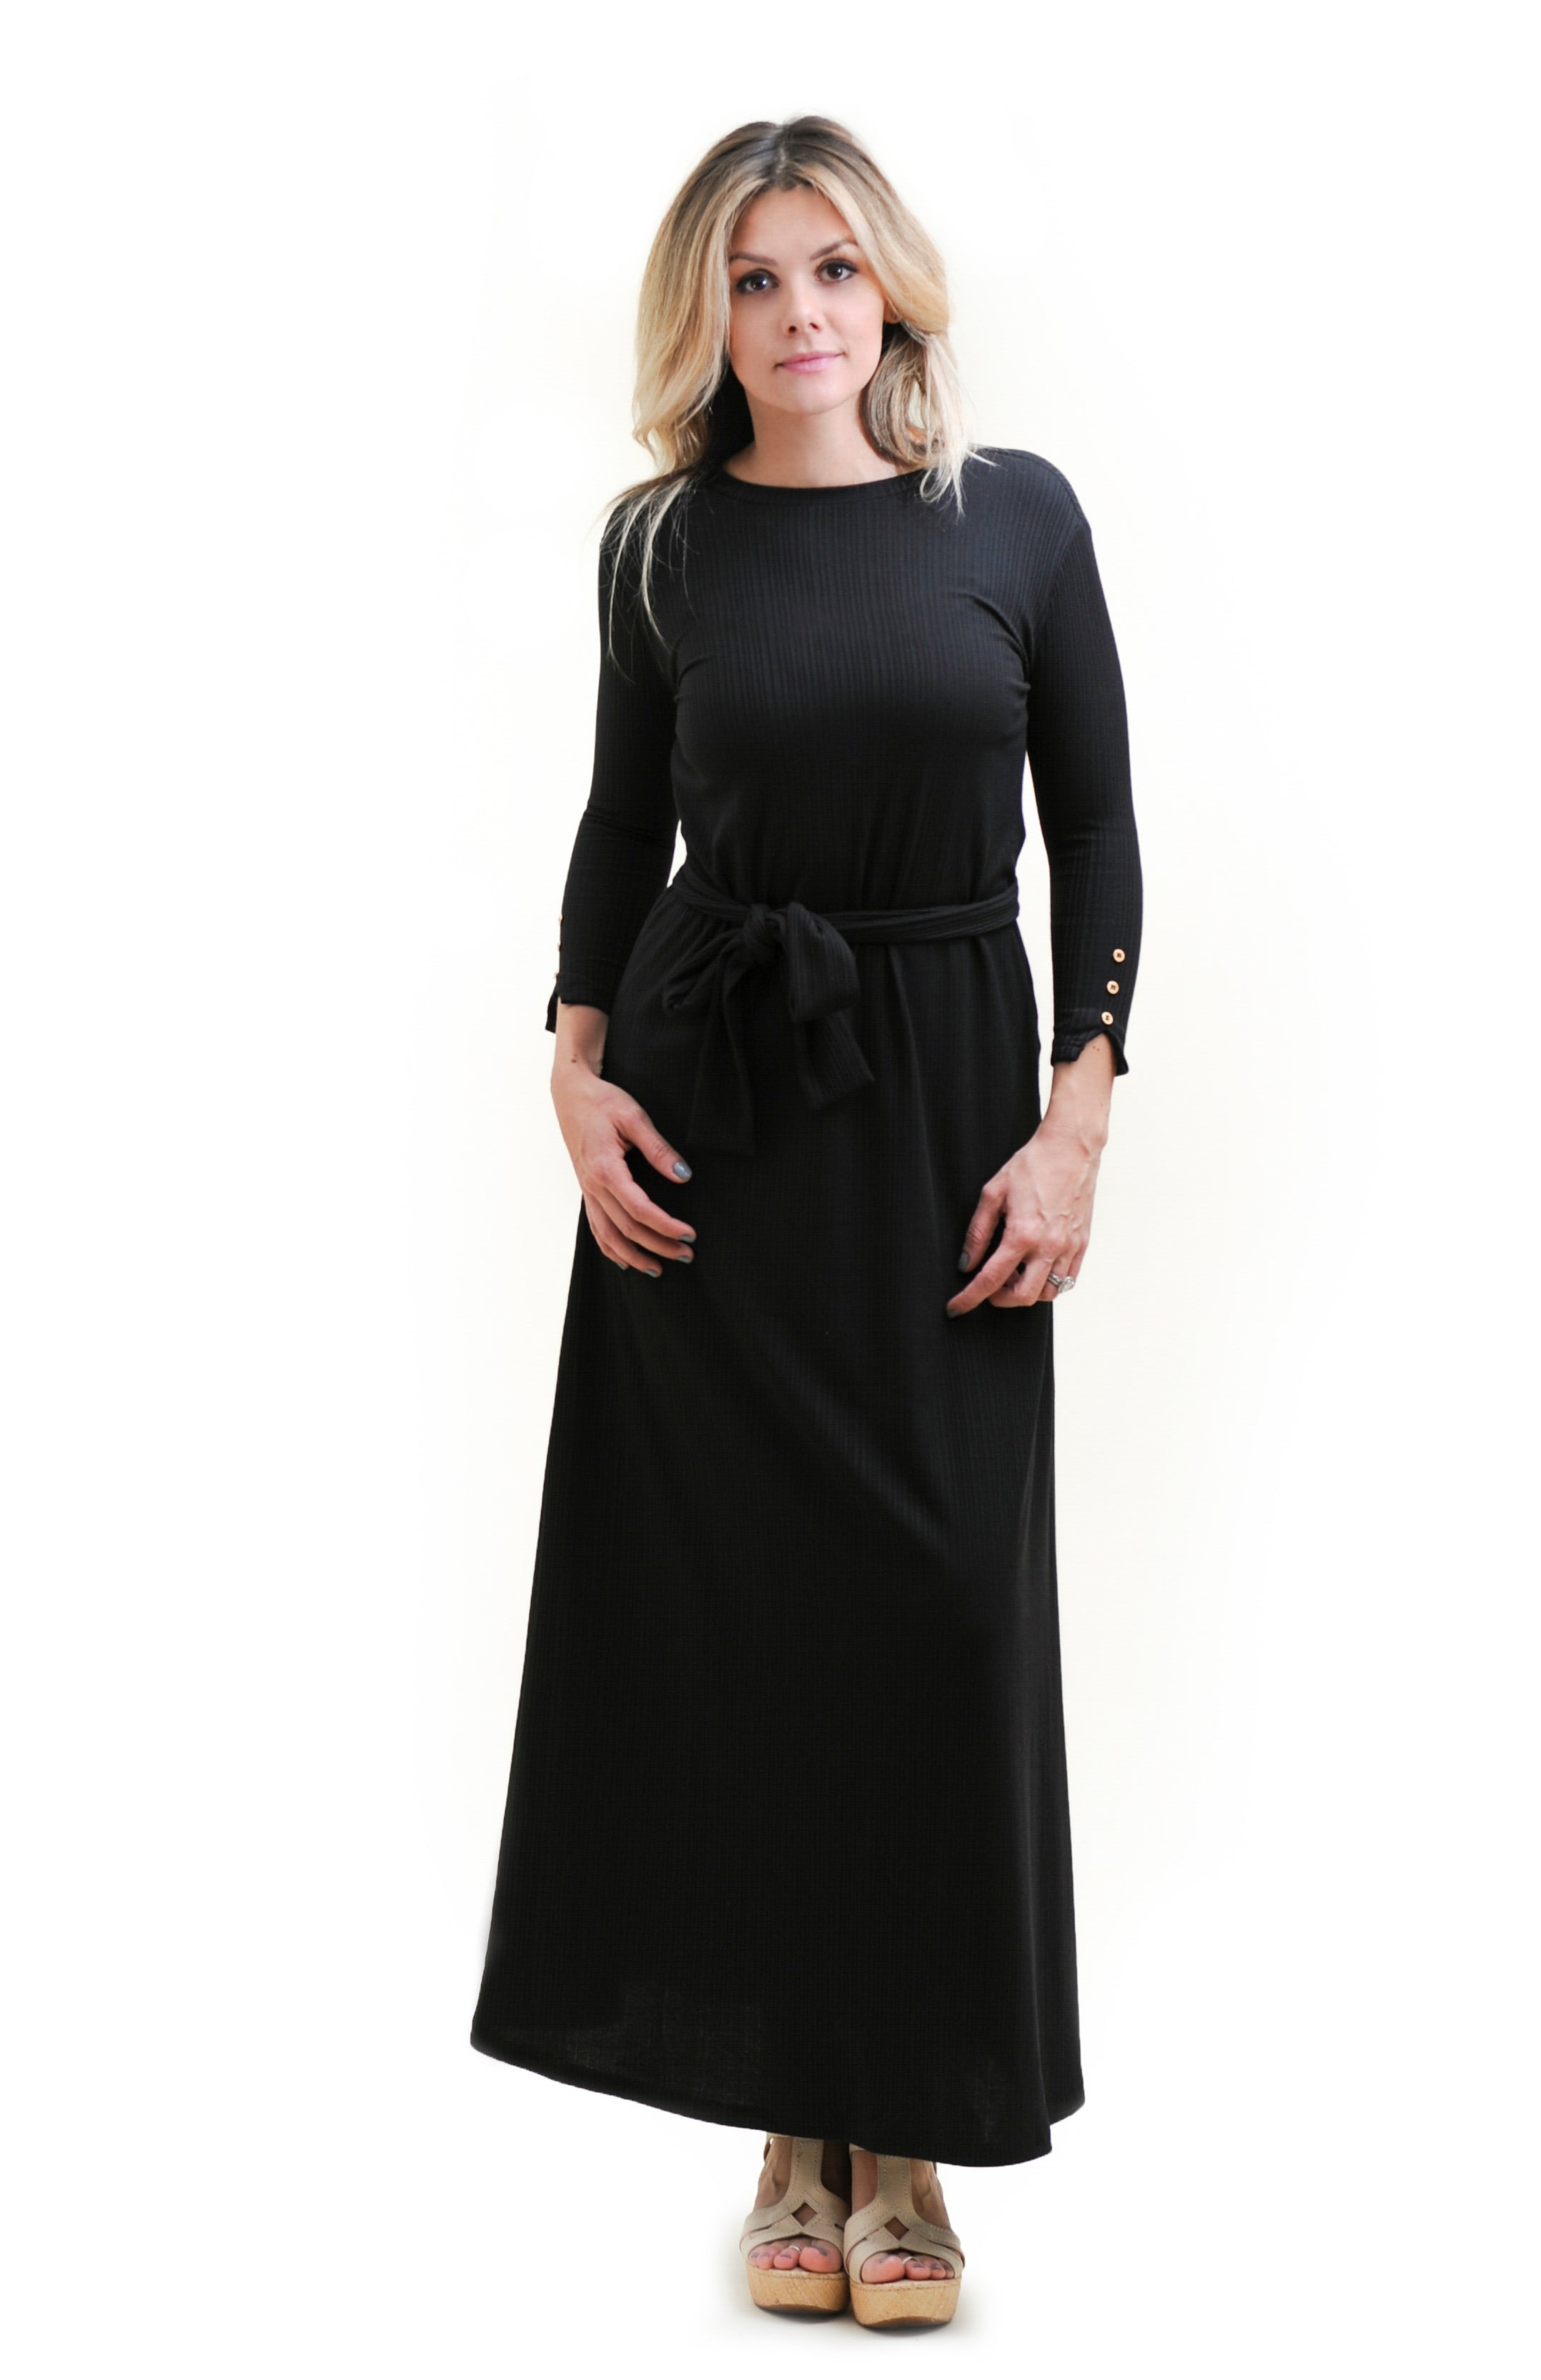 9f3e41eff8 Nursing Maxi Dress in Black Rib modest midi length with gold buttons ...